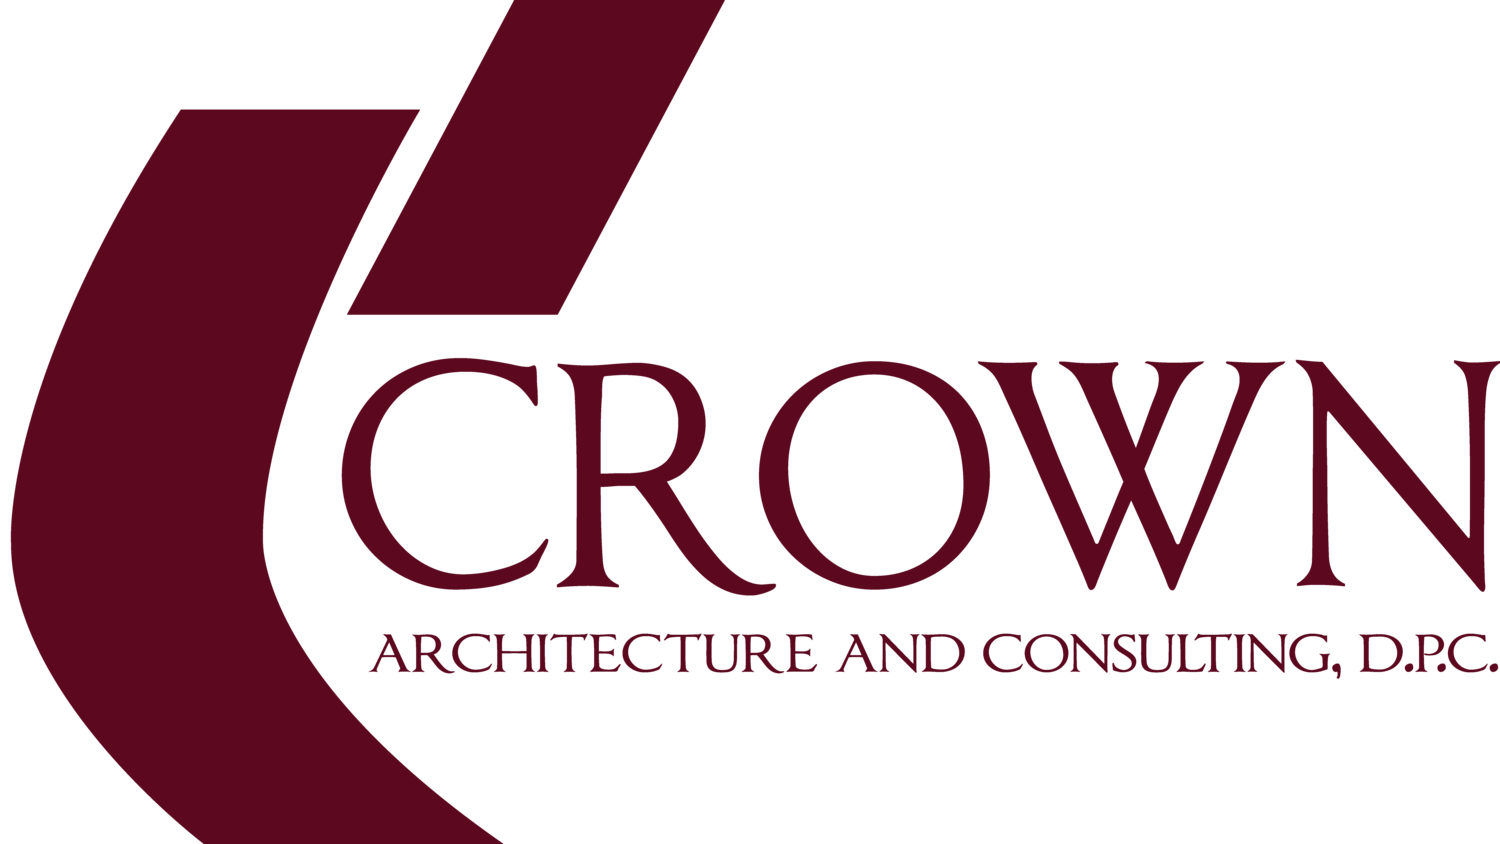 CROWN ARCHITECTURE